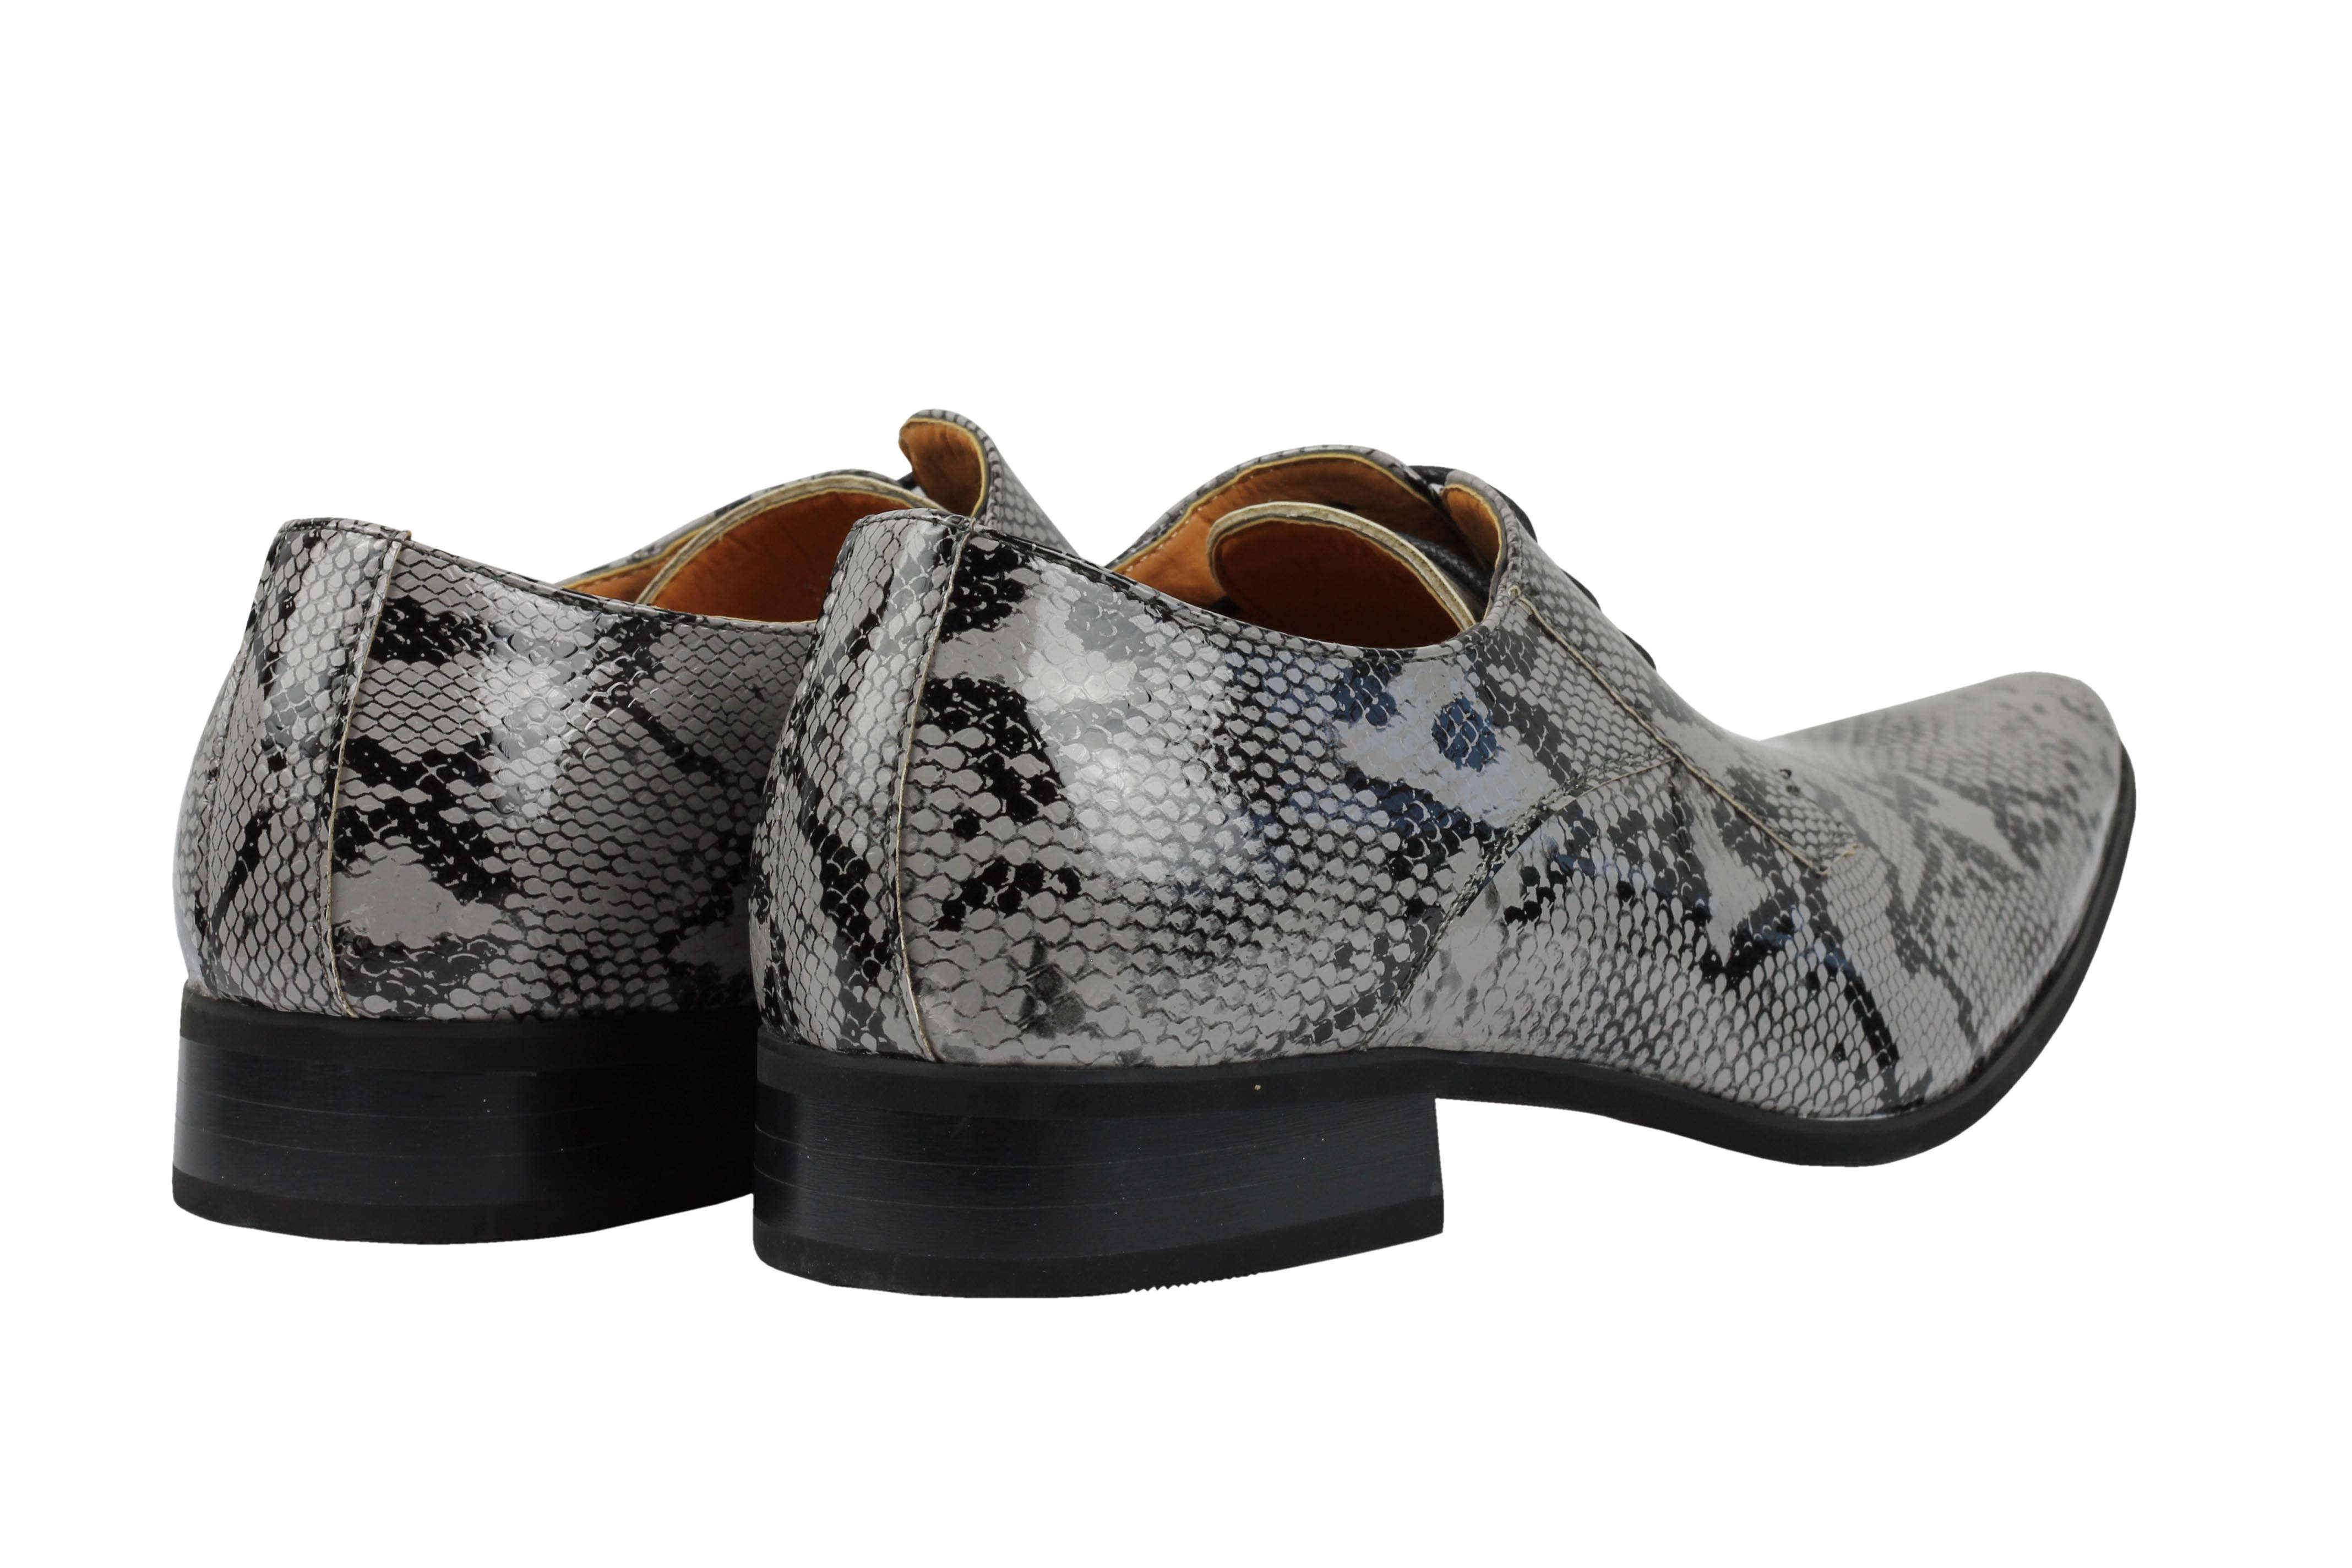 Mens-Leather-Lined-Snake-Skin-Print-Shiny-Patent-Leather-Smart-Party-Retro-Shoes thumbnail 18